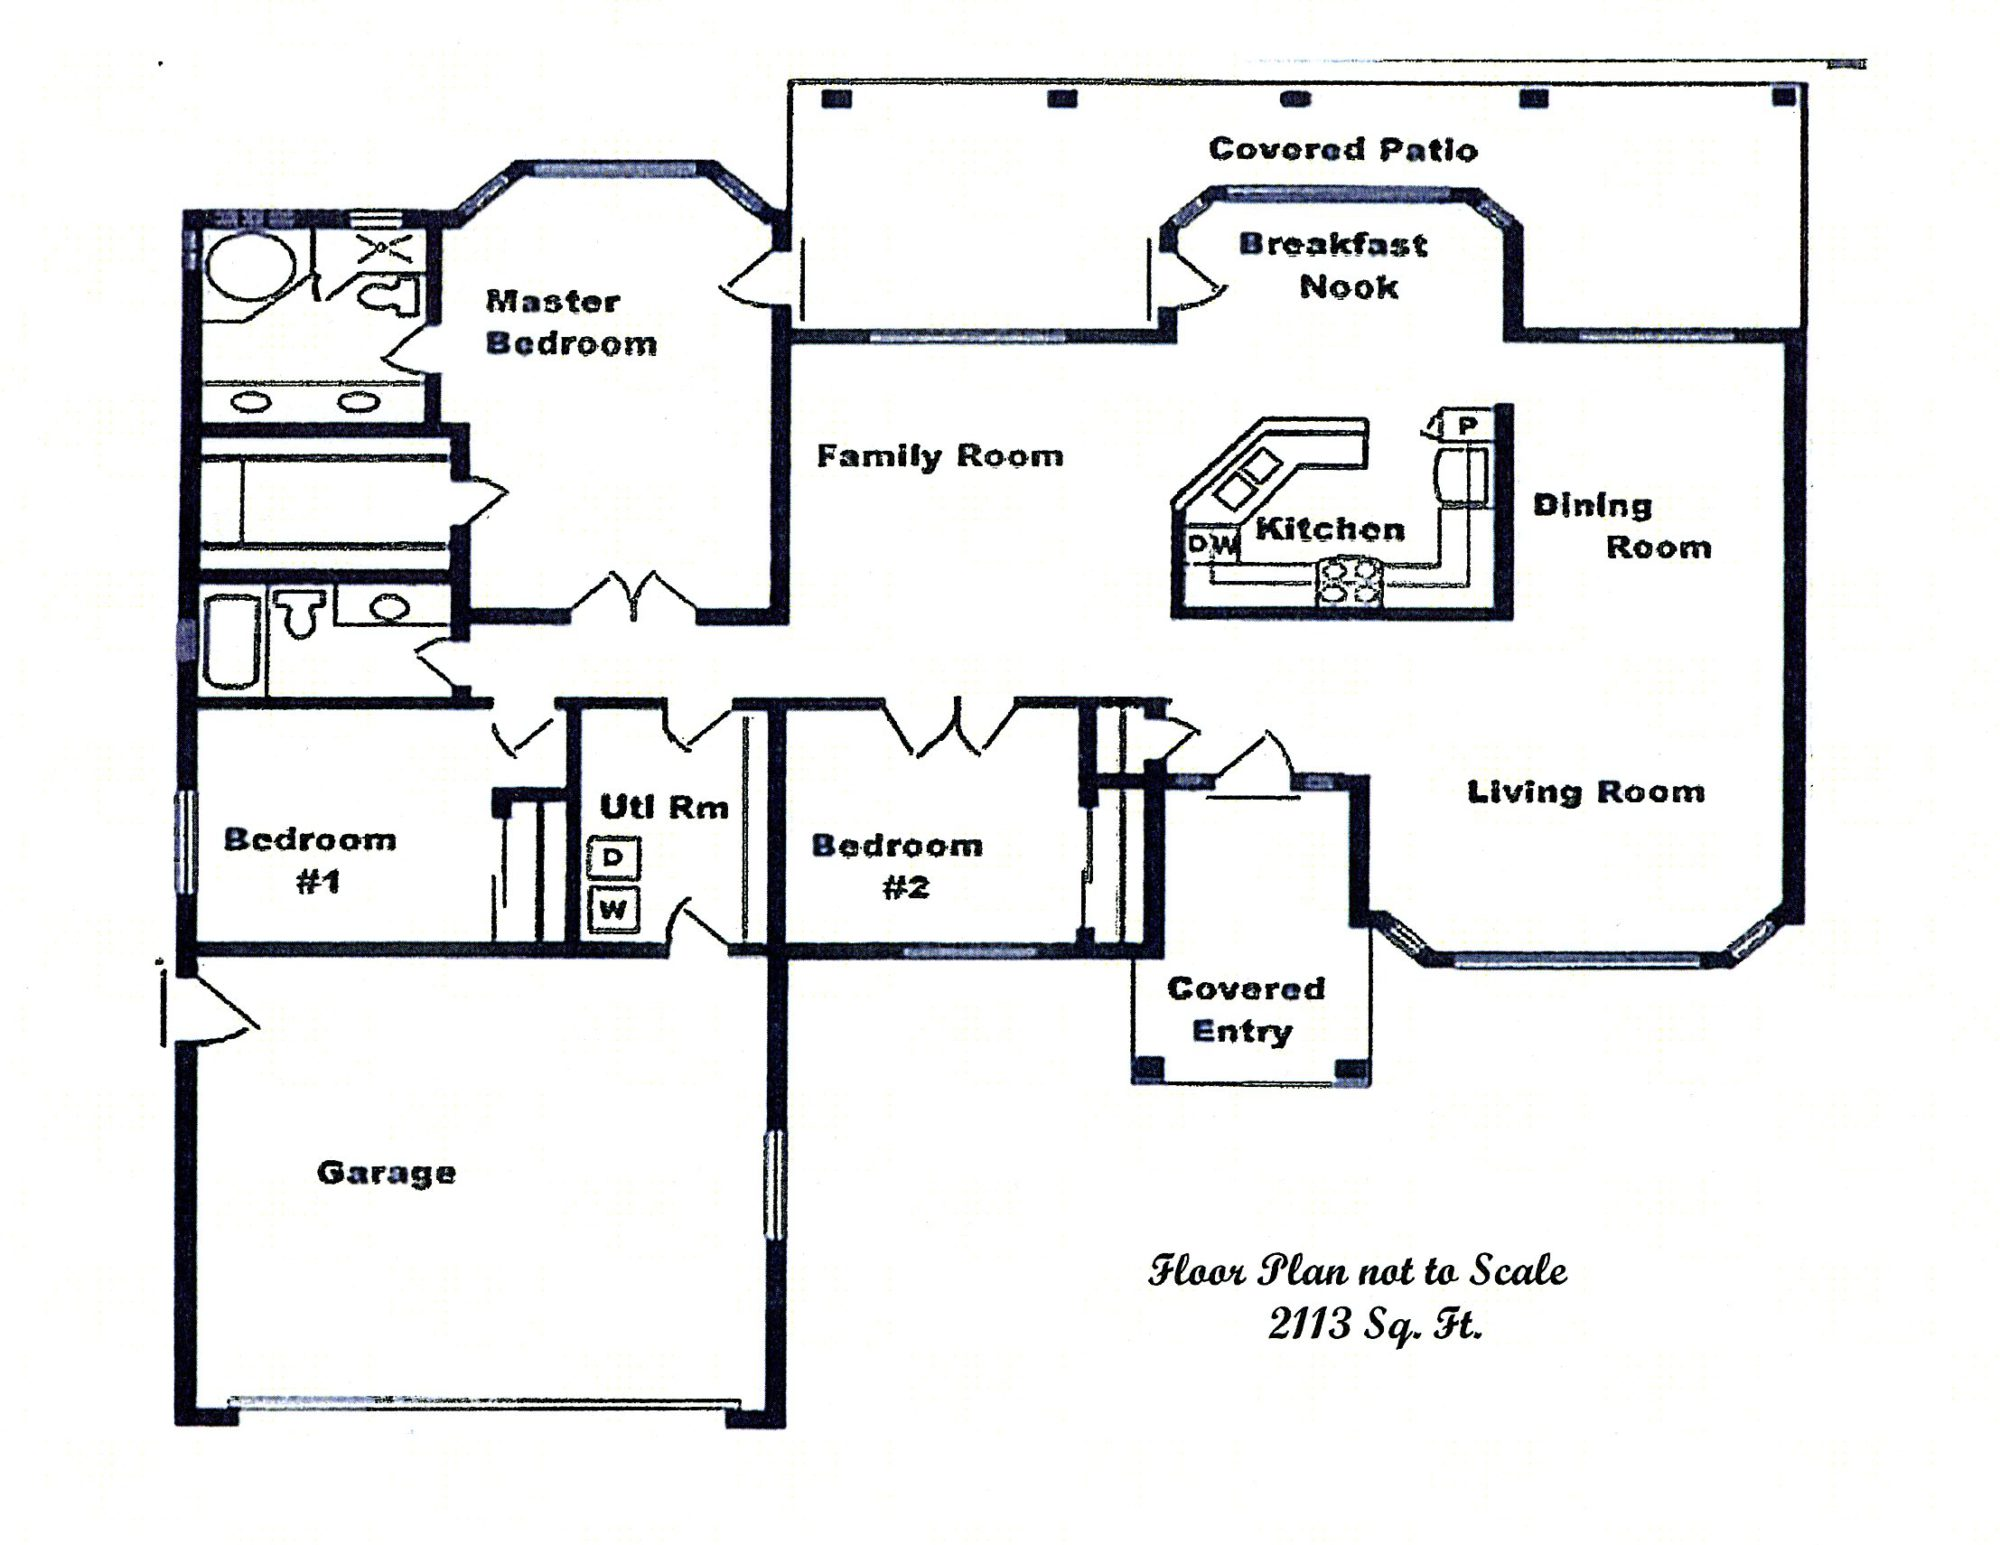 Sierra Remodeling Custom Home Model 2113 floor plan